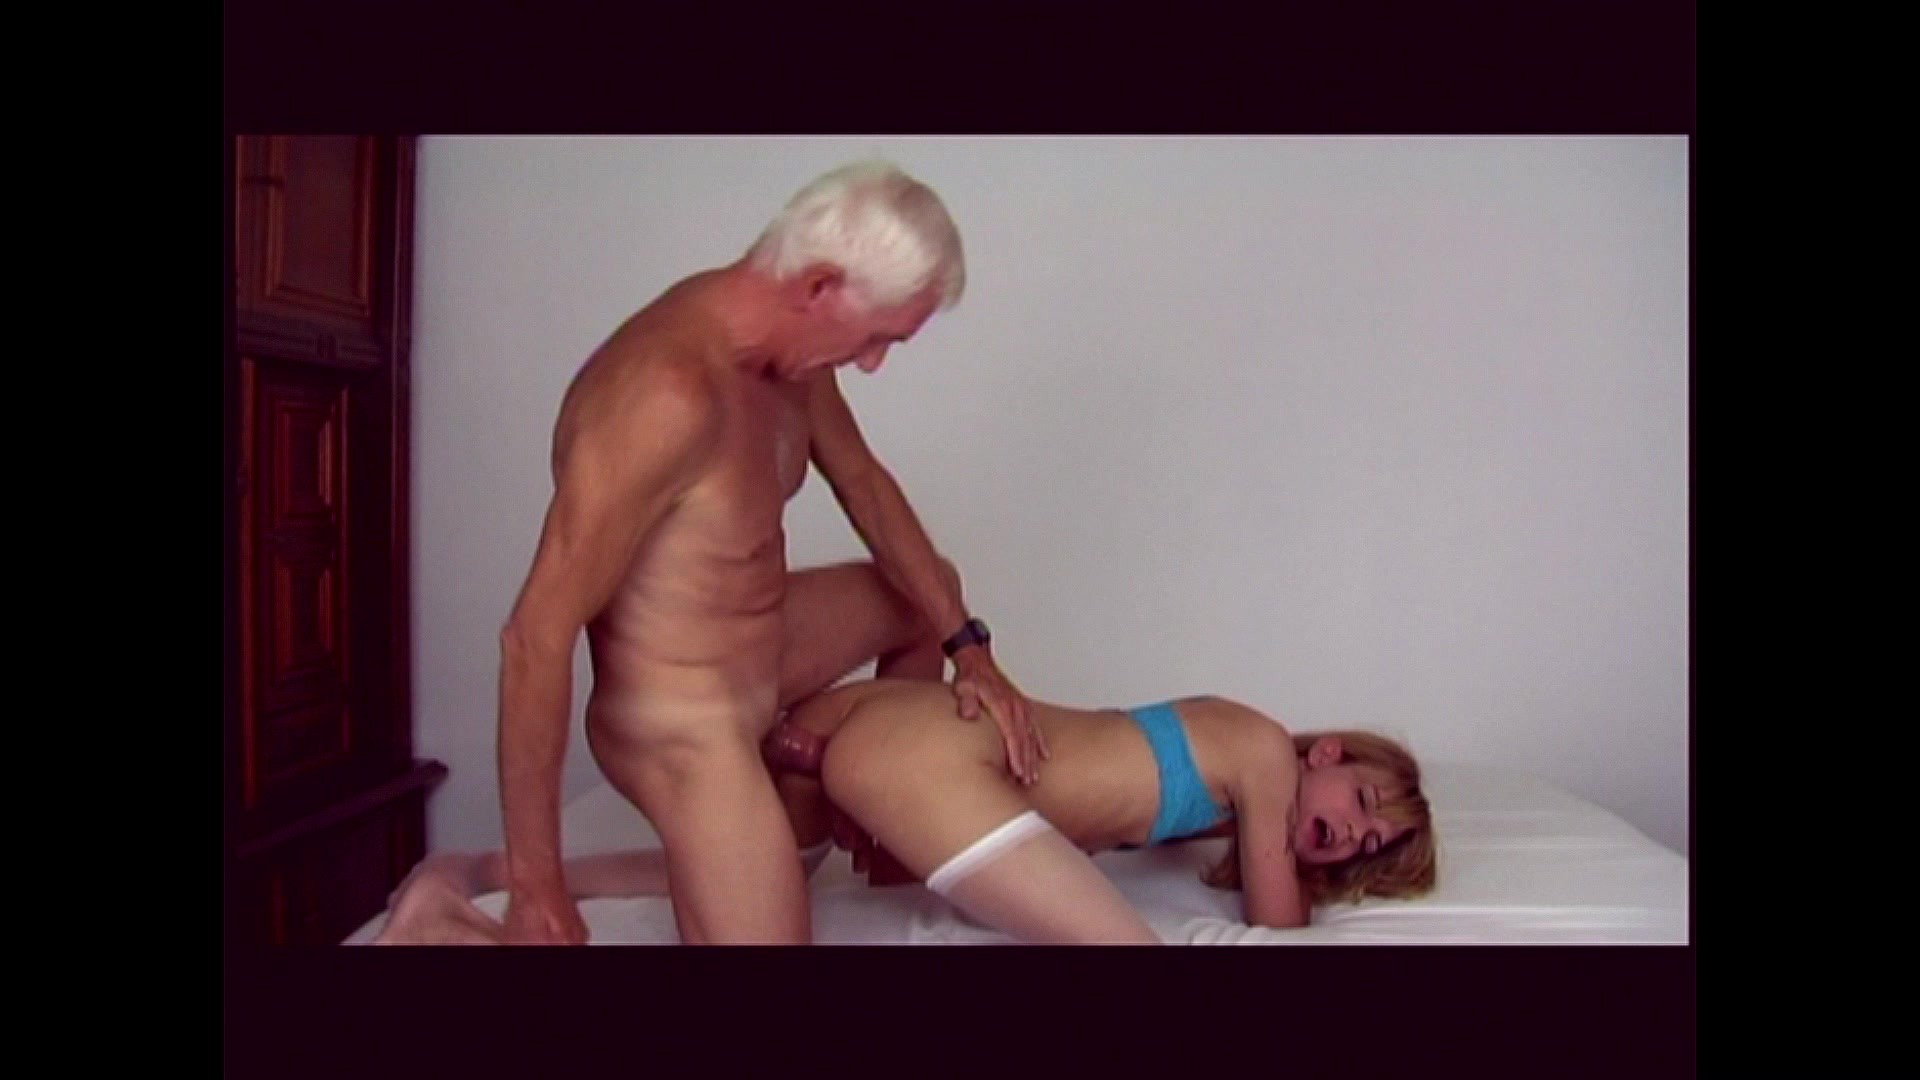 he eats her pussy sucks and fingers